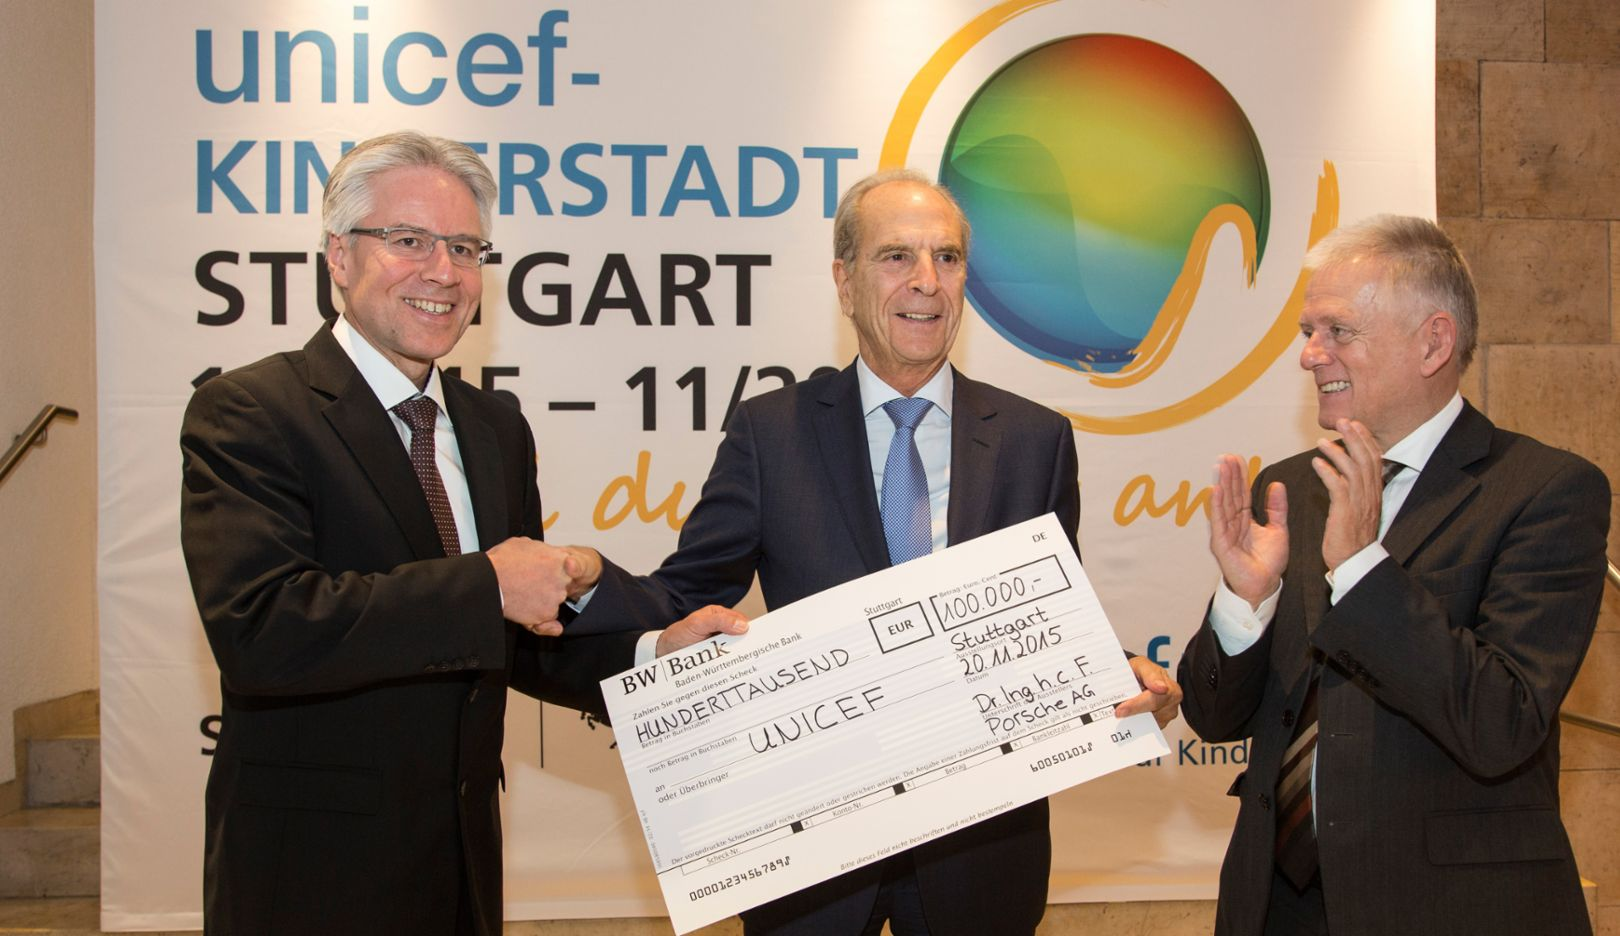 Andreas Haffner, Member of the Executive Board Human Resources, Dr. Jürgen Heraeus, Chairman UNICEF Germany, Fritz Kuhn, Mayor of Stuttgart (l.-r.), 2015, Porsche AG